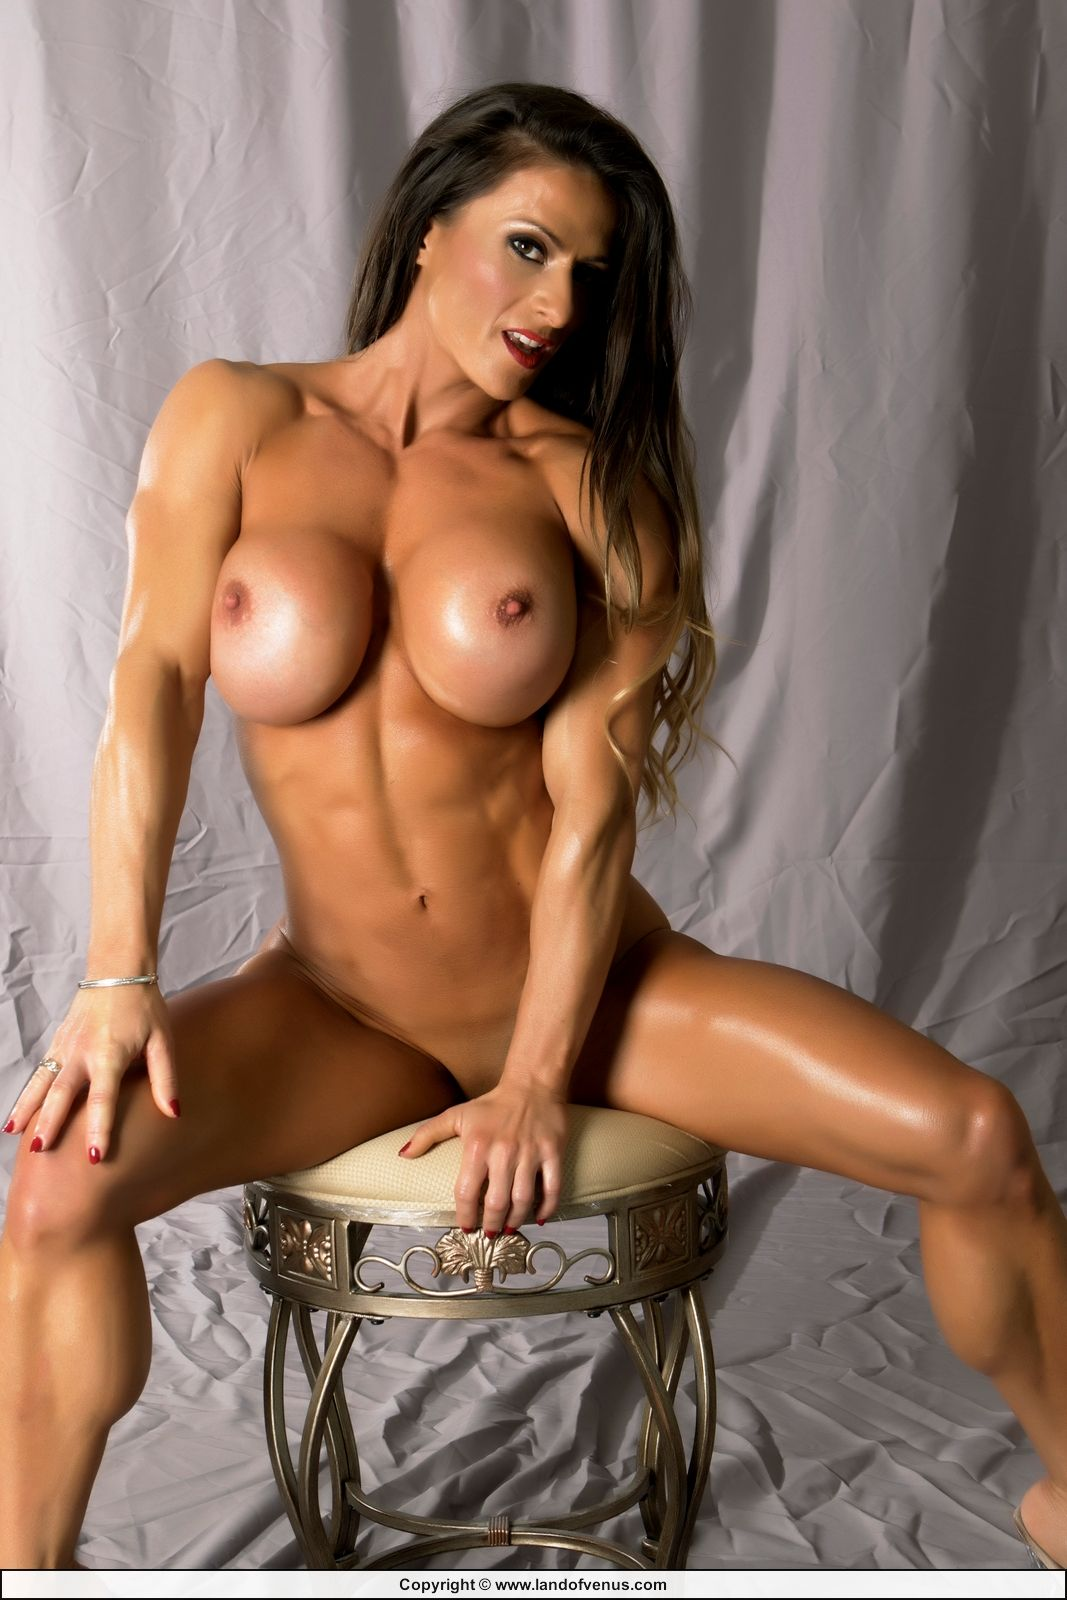 Nude-Fitness-Babes More New Pics Of Ifbb Pro Figure -5229